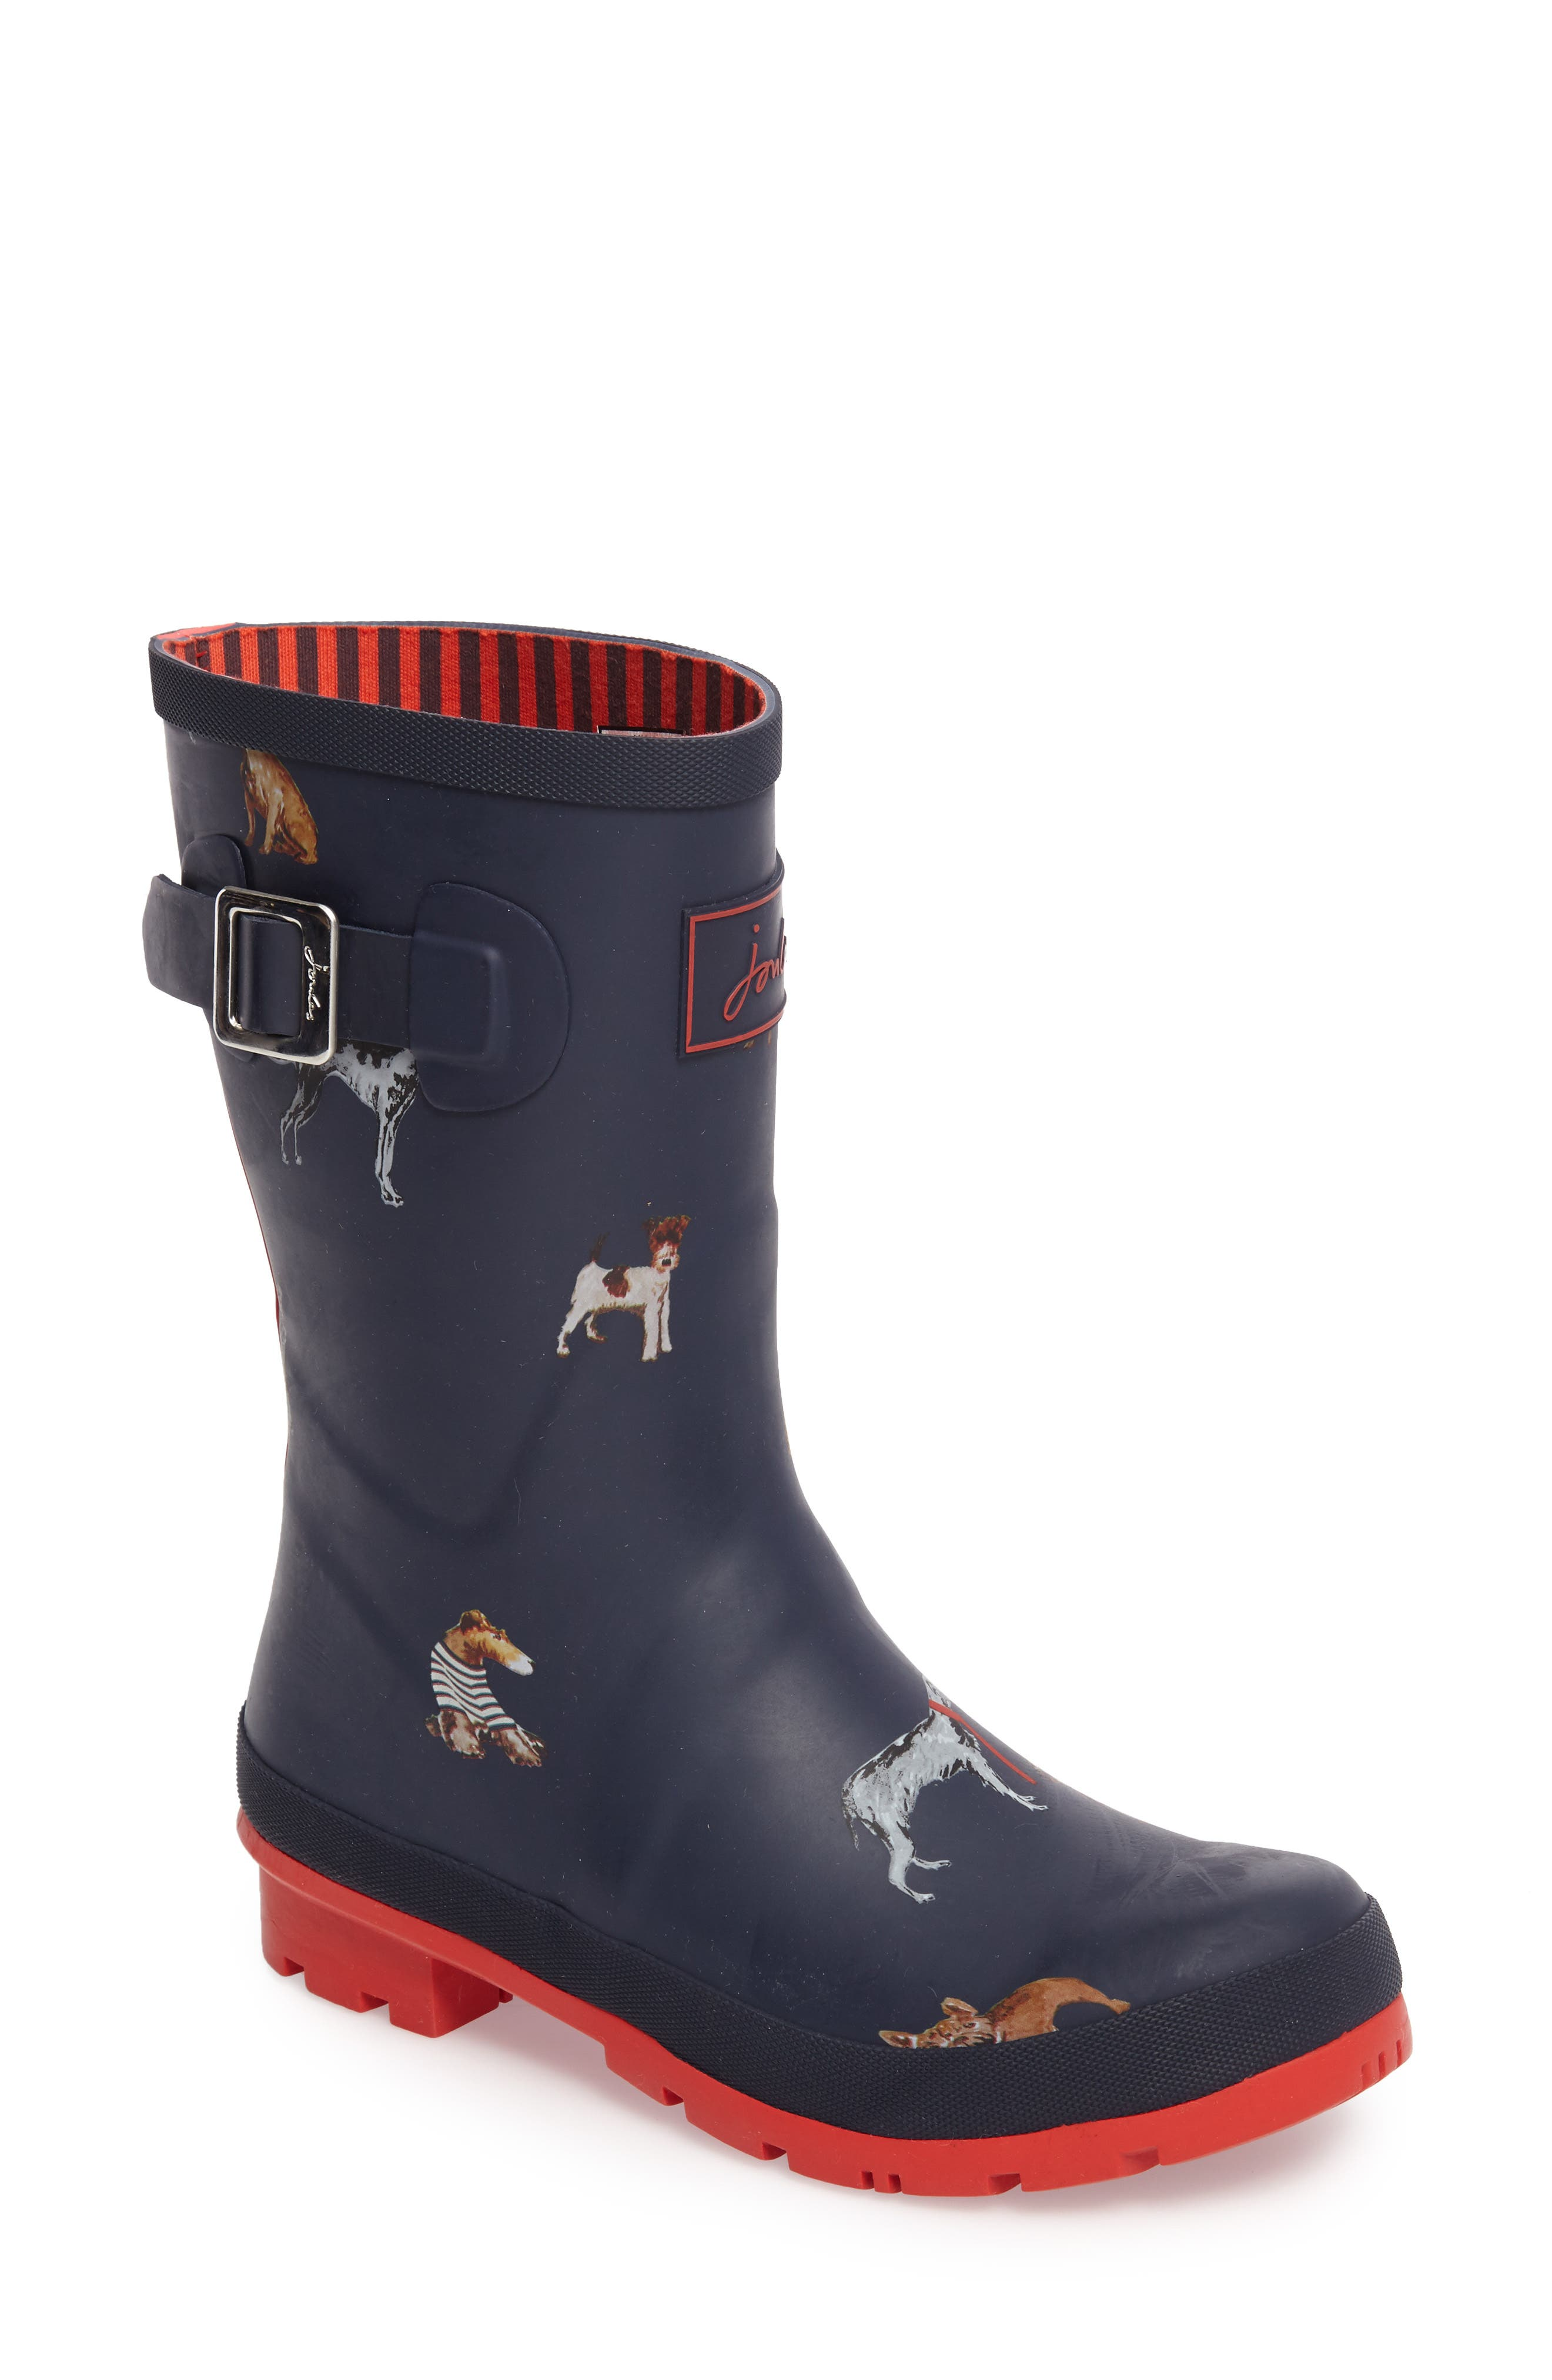 Main Image - Joules 'Molly' Rain Boot (Women)